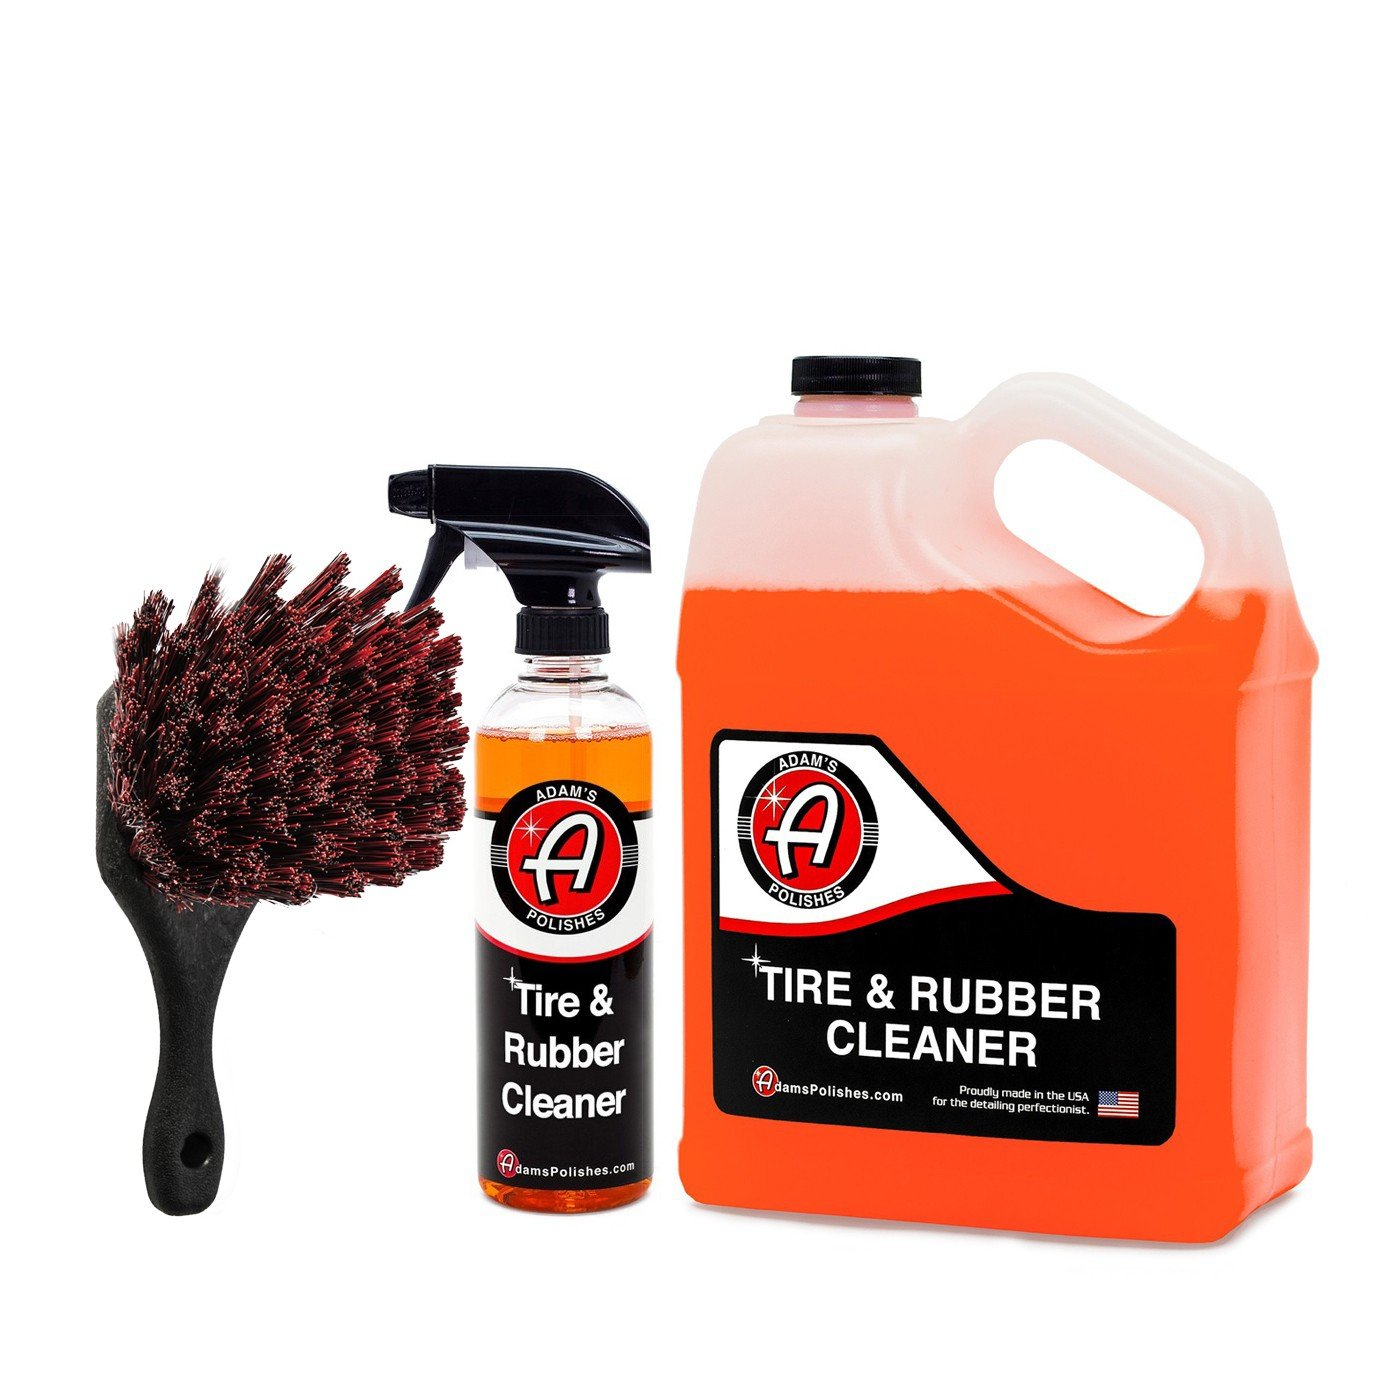 Adam's Tire & Rubber Cleaner - Removes Discoloration from Tires Quickly - Works Great on Tires, Rubber & Plastic Trim, and Rubber Floor Mats (1 Gallon) Adam' s Polishes